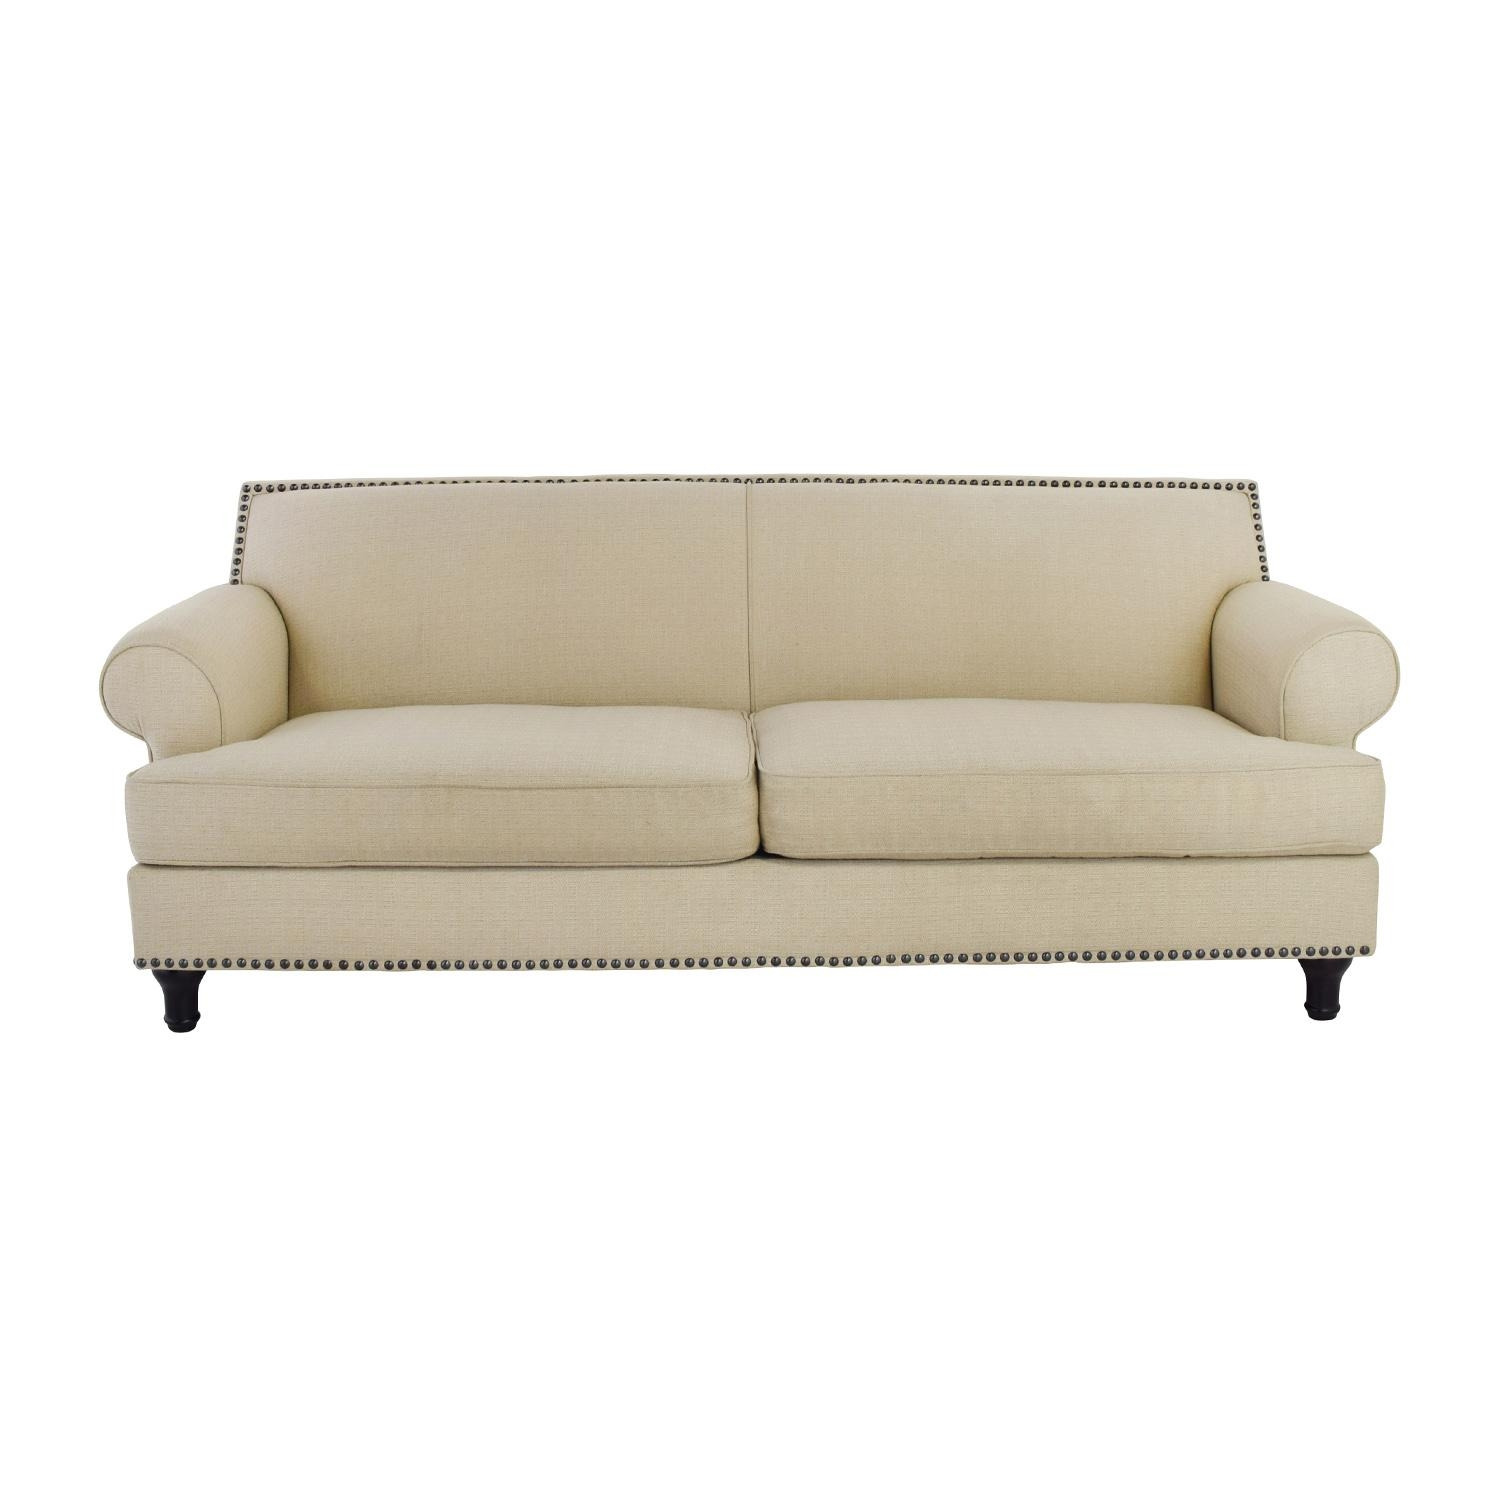 48% Off - Pier 1 Pier 1 Carmen Tan Couch With Studs / Sofas with Pier 1 Carmen Sofas